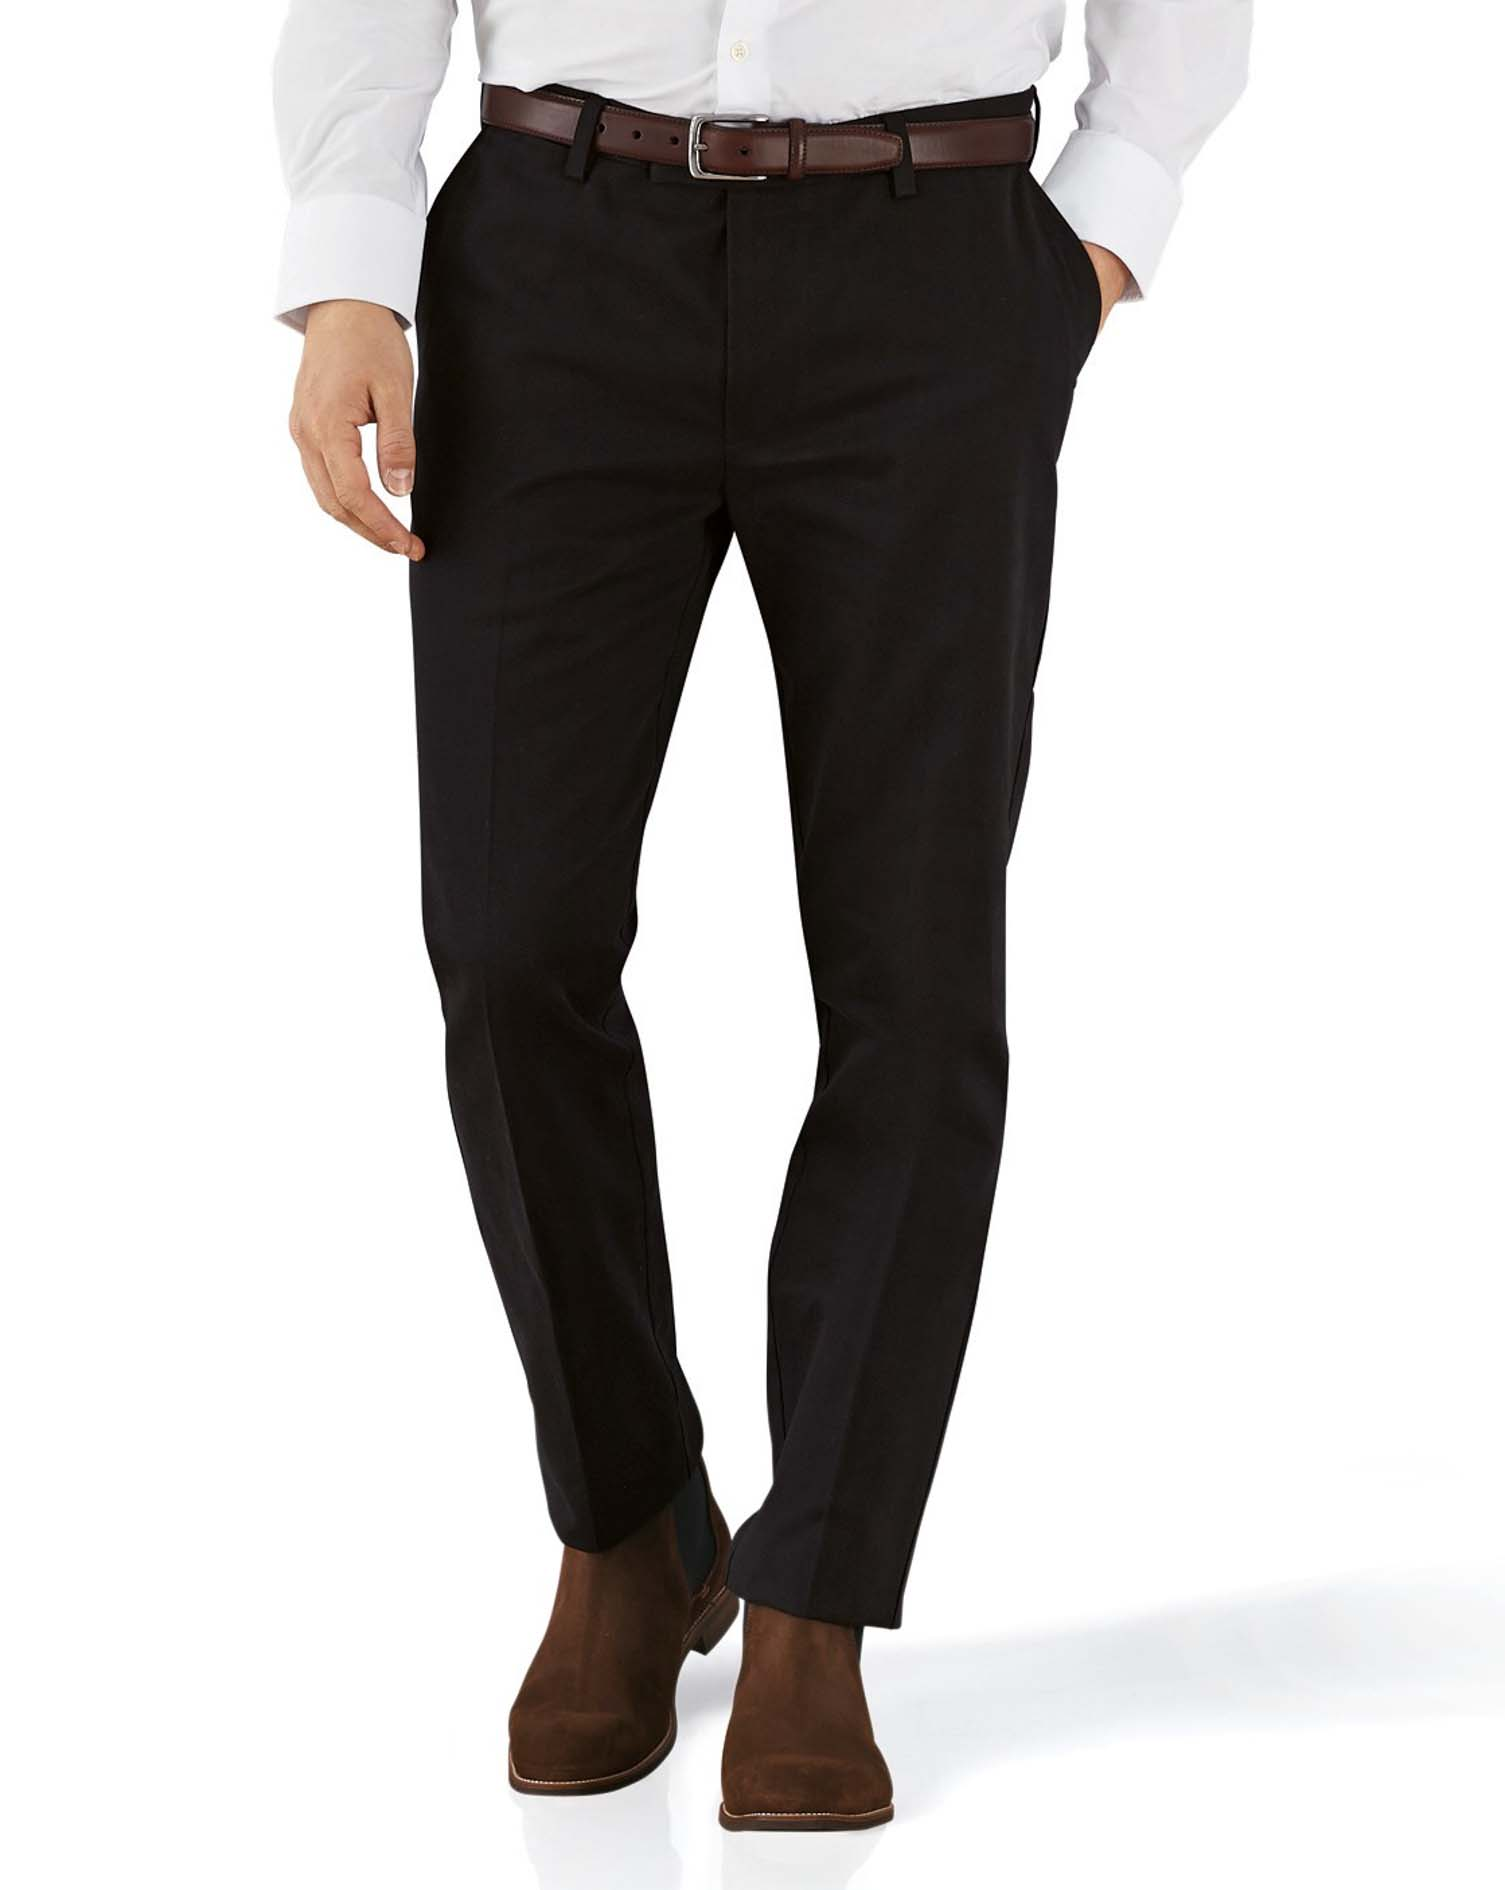 Shop online for men's chino pants at trueiupnbp.gq Browse straight-leg, slim-fit & tapered-leg chinos & more in a variety of styles. Free shipping & returns.